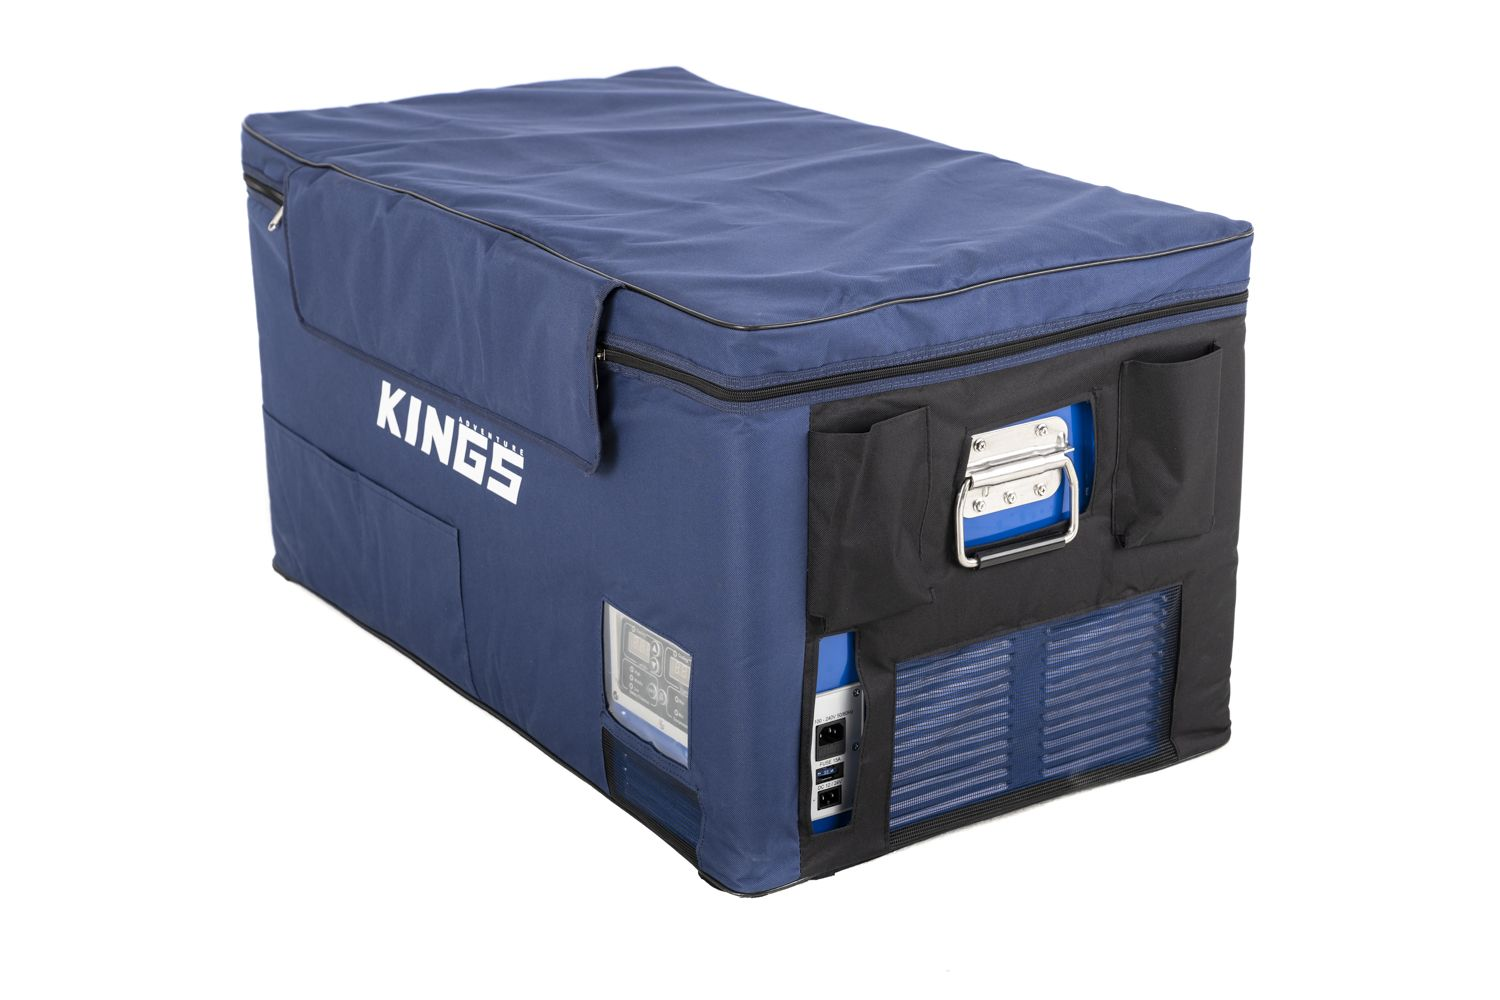 Adventure Kings 90L Fridge Cover